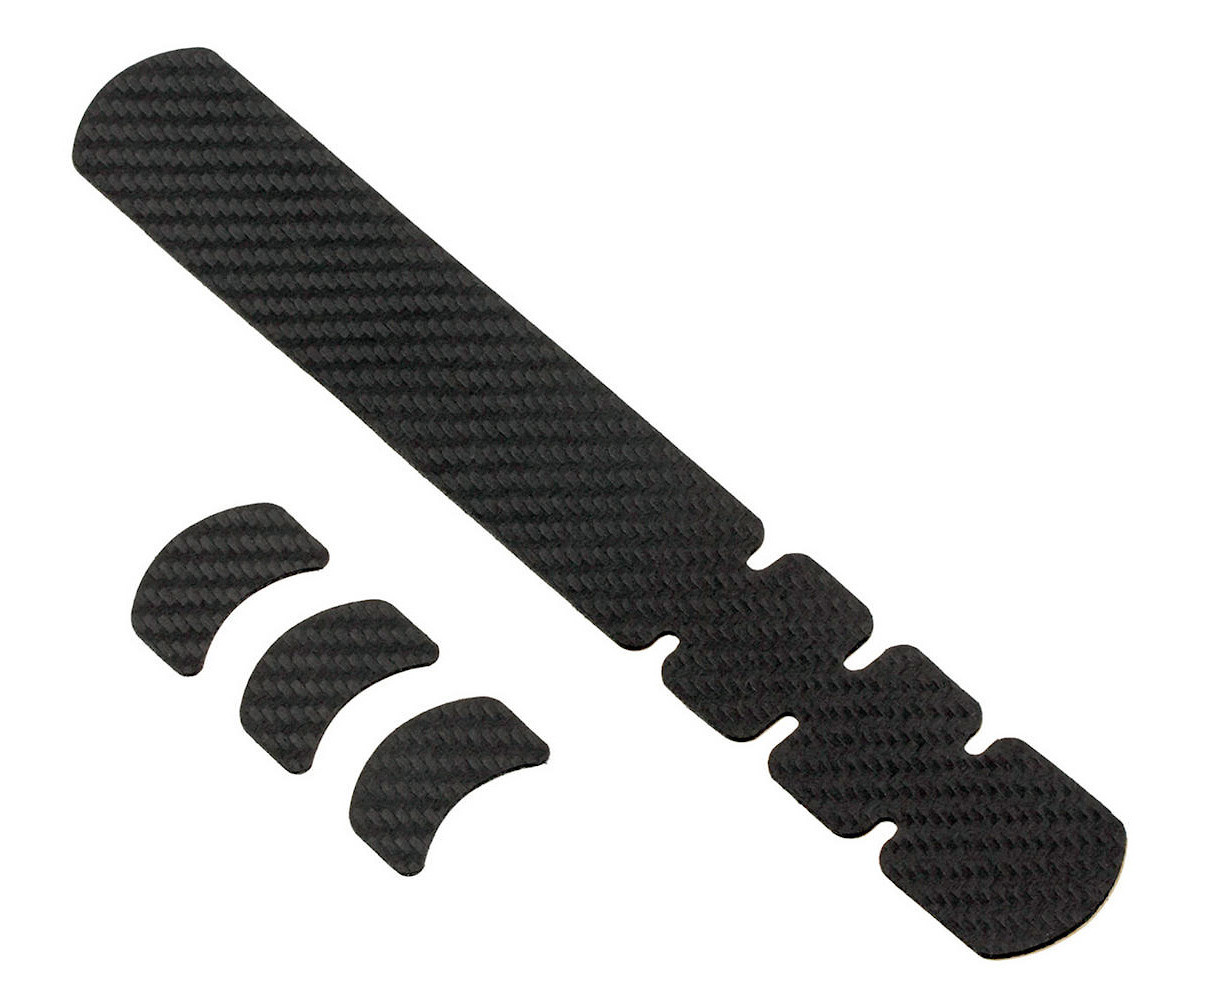 Lizard Skins Frame Protector (Small) - carbon leather